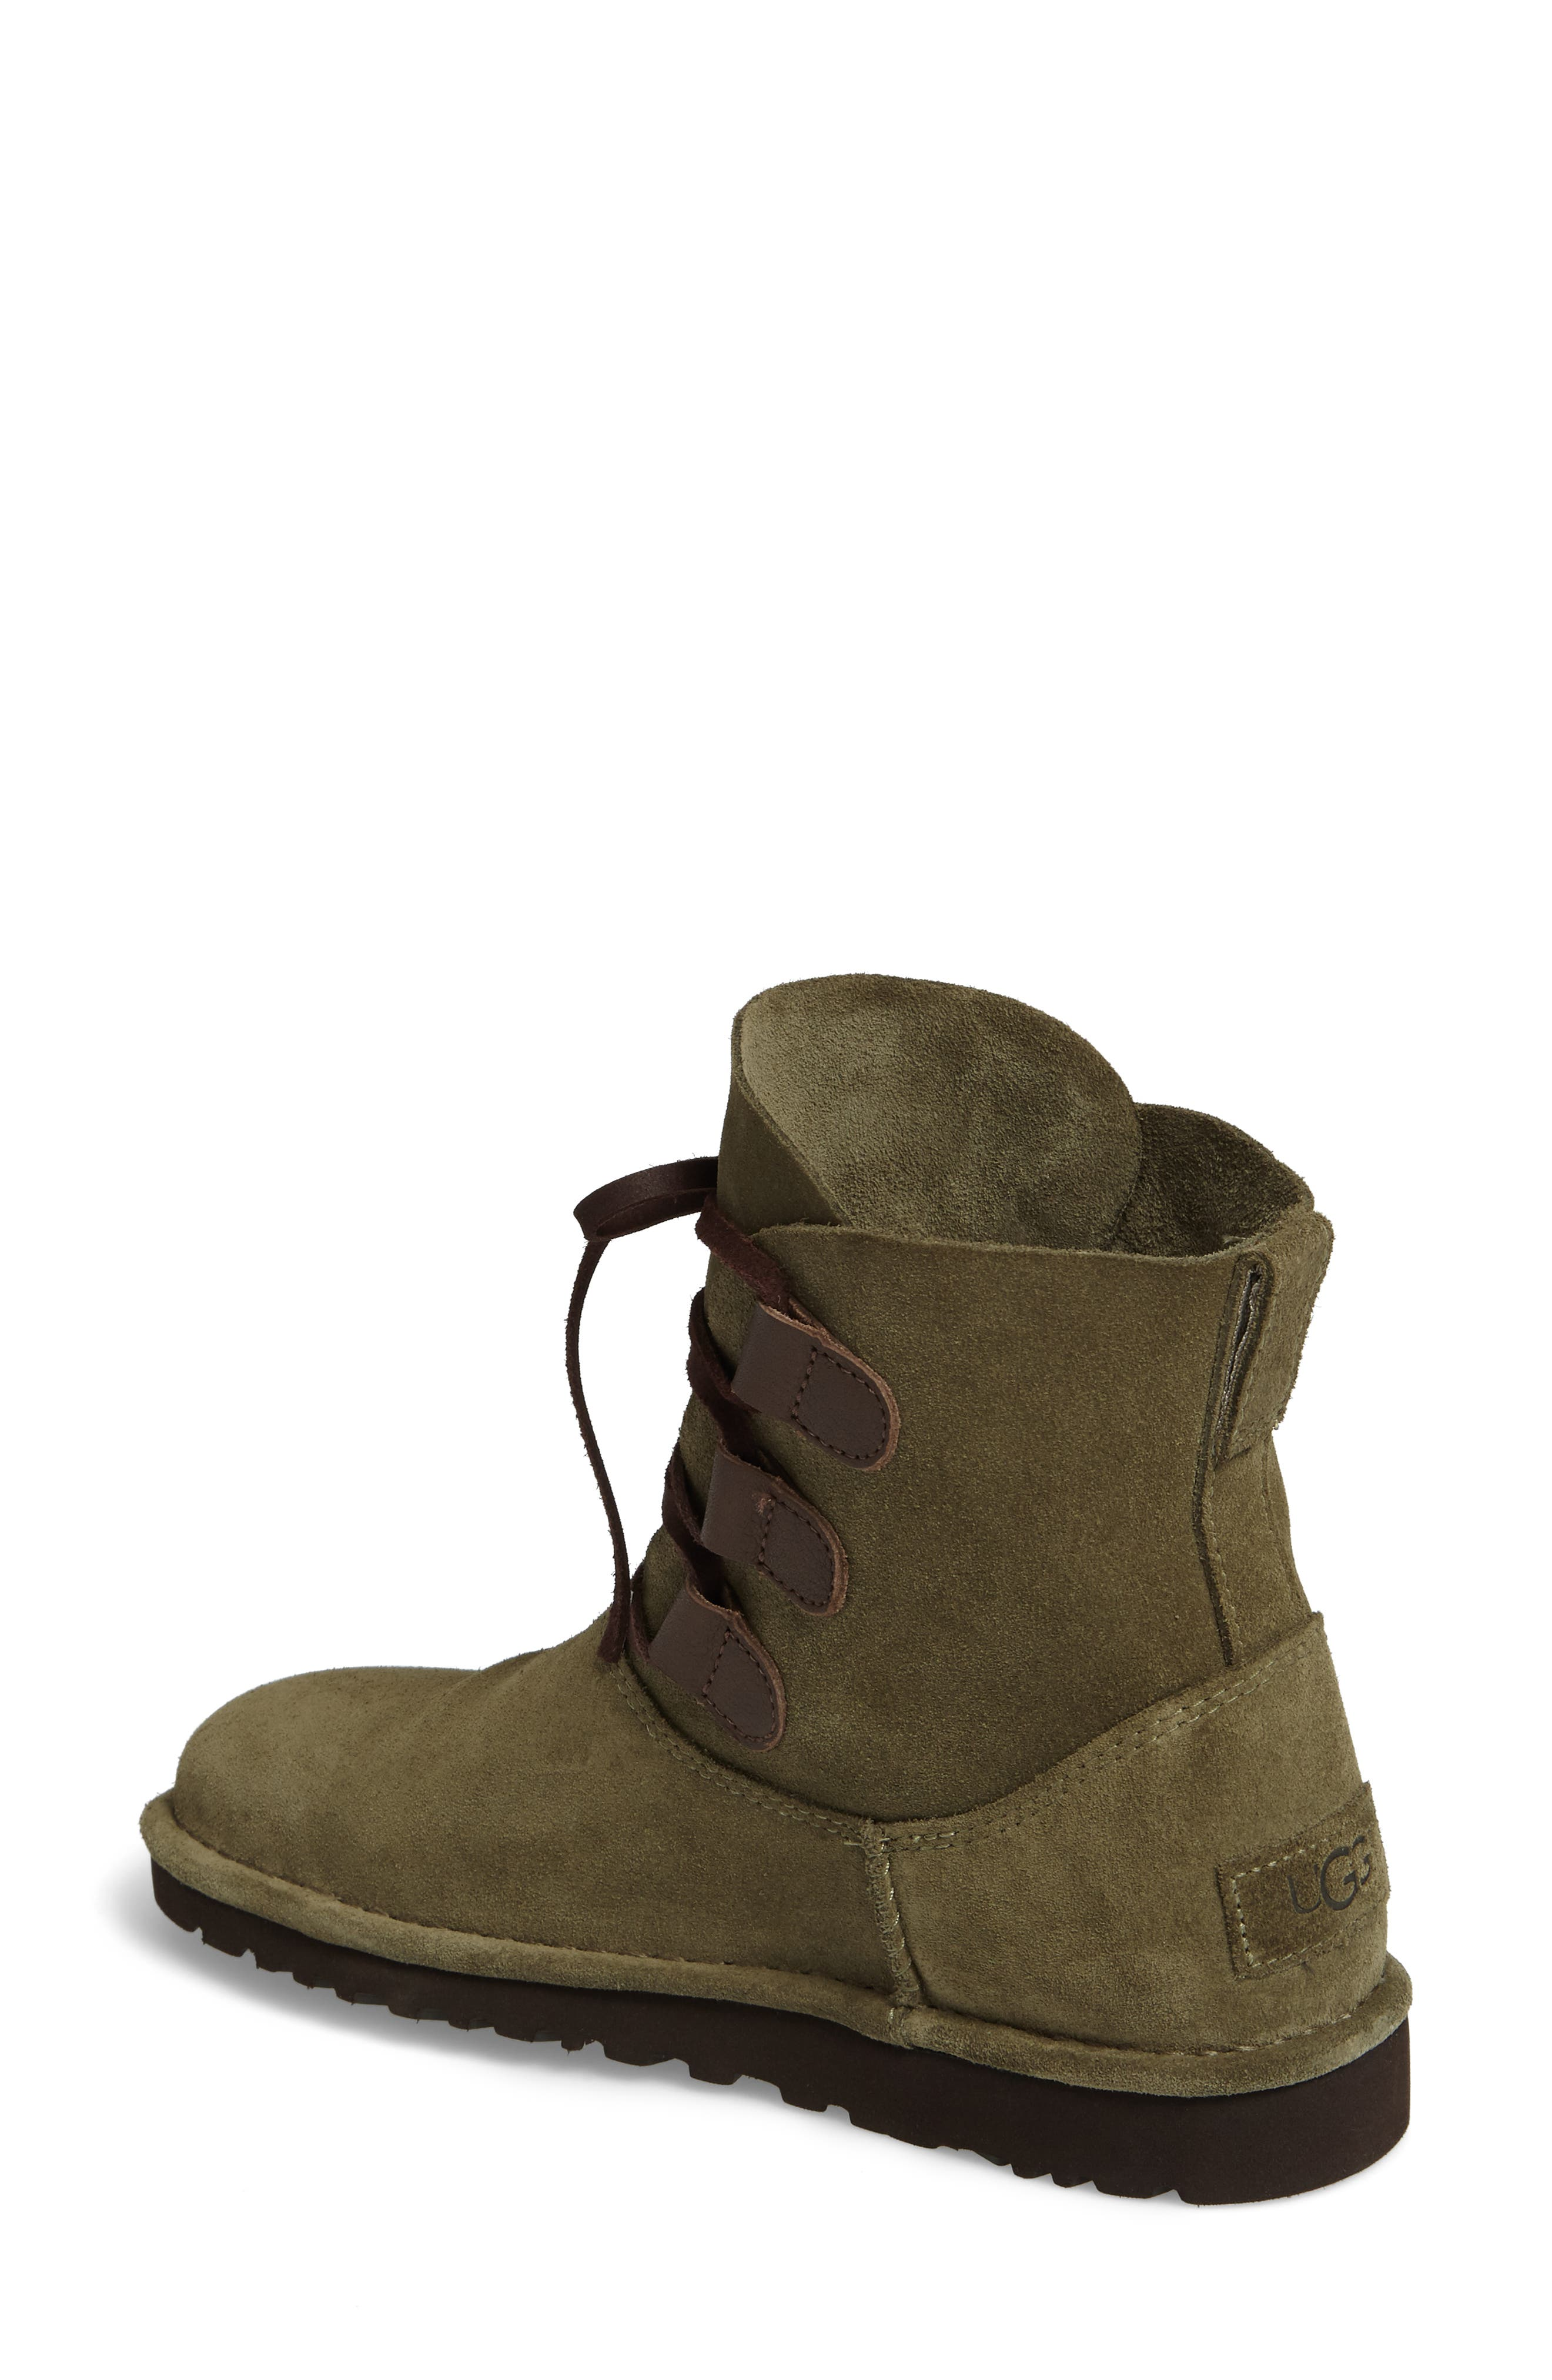 Elvi Short Boot,                             Alternate thumbnail 6, color,